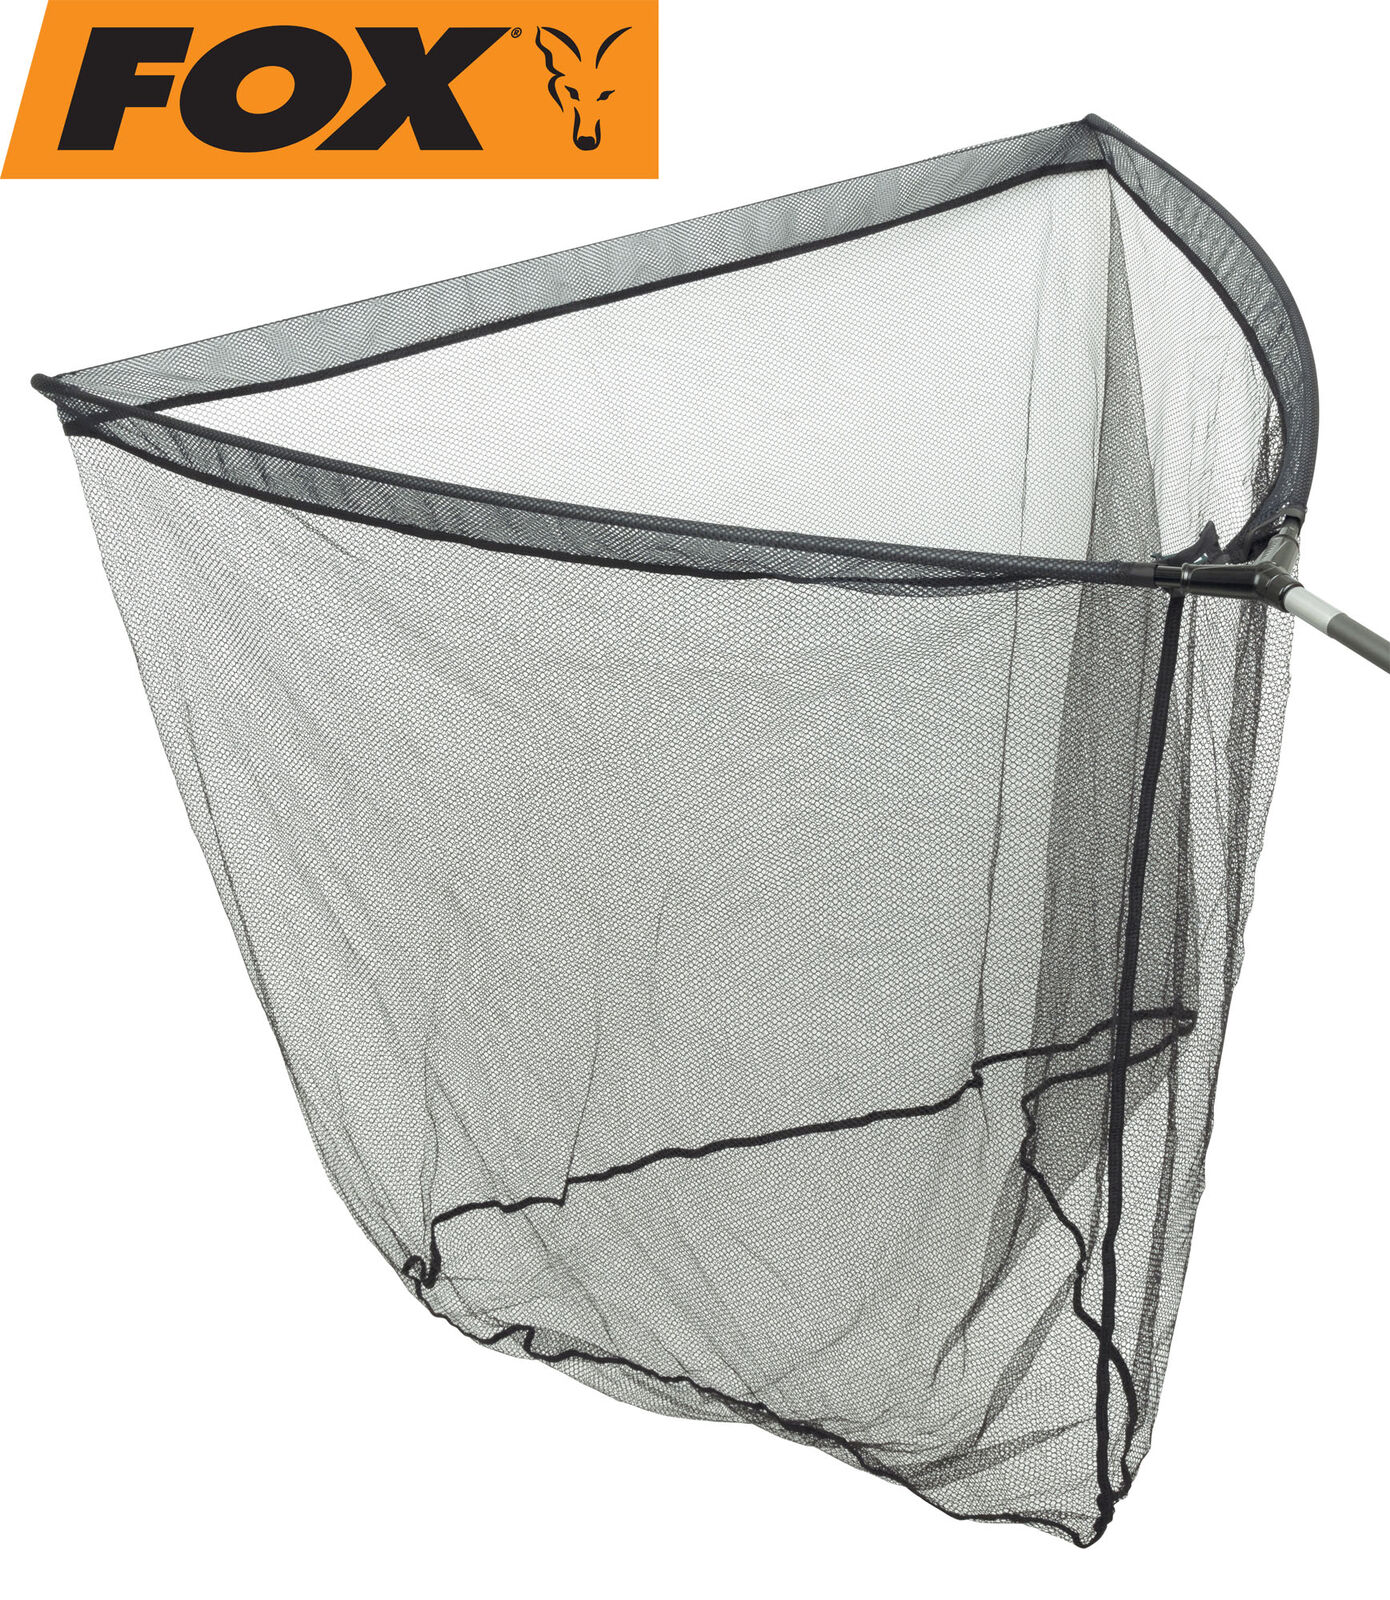 Fox EOS landing net 46